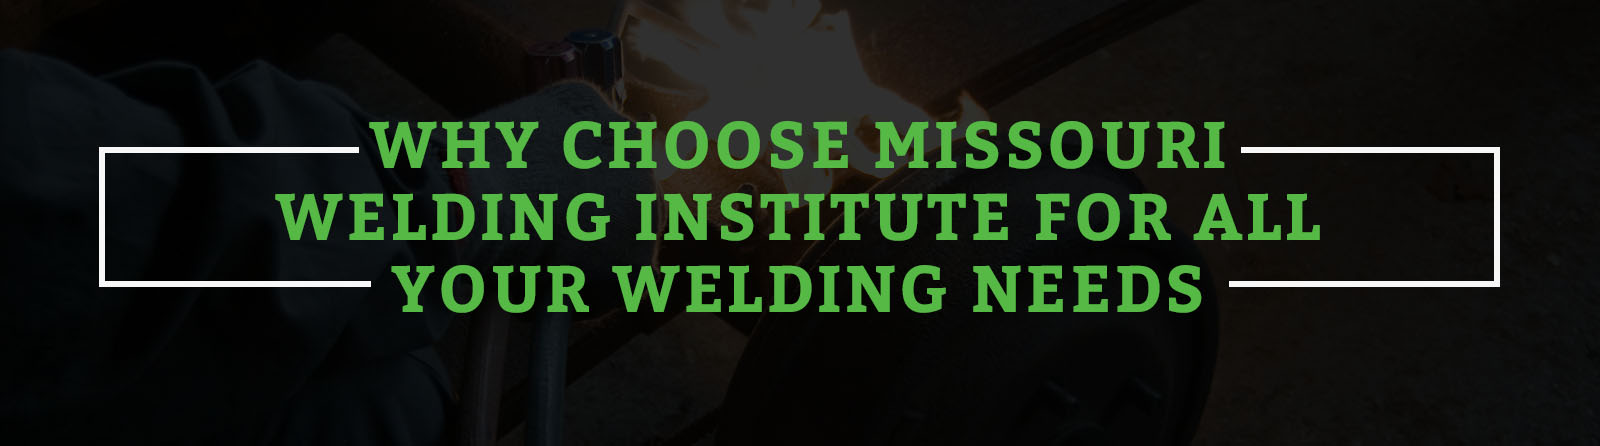 WHY CHOOSE MISSOURI WELDING INSTITUTE FOR ALL YOUR WELDING NEEDS